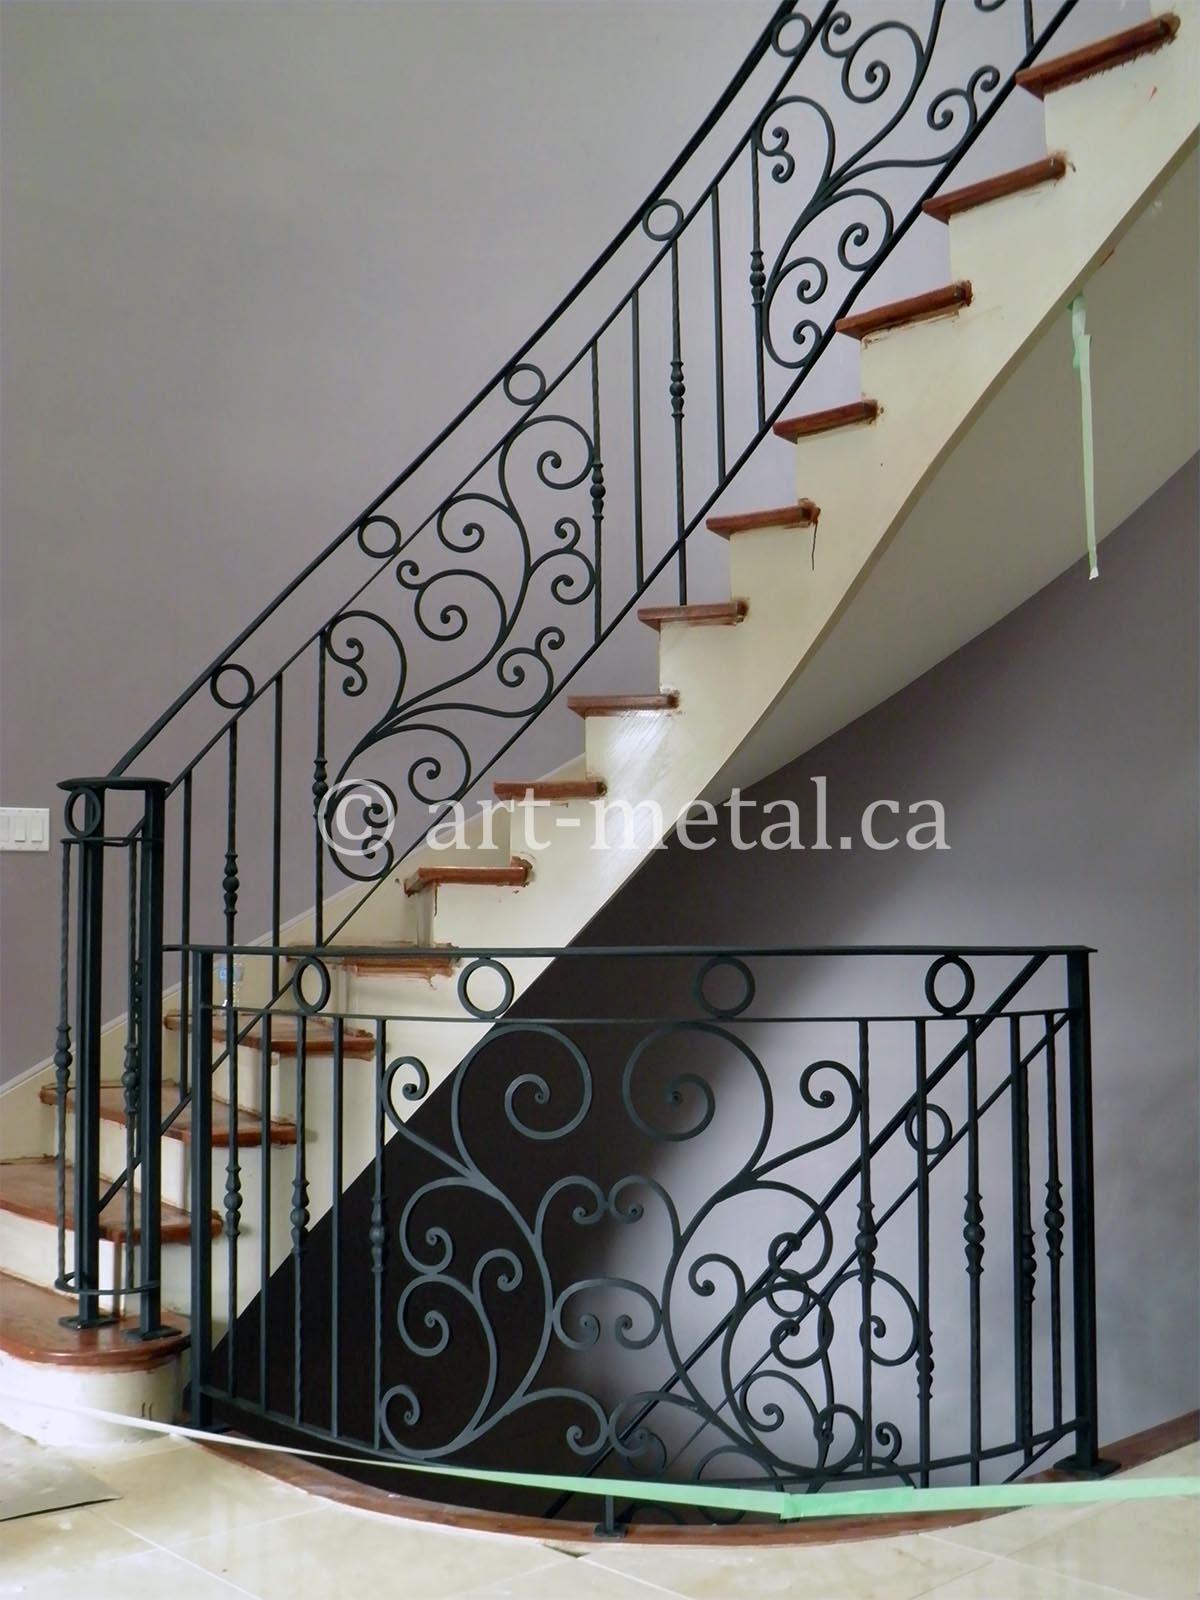 Get Original Wrought Iron Designs For Gates And Railings   Wrought Iron Handrail Designs   Staircase   Iron Pipe   Cast Iron Railing   Garden   Geometric Railing